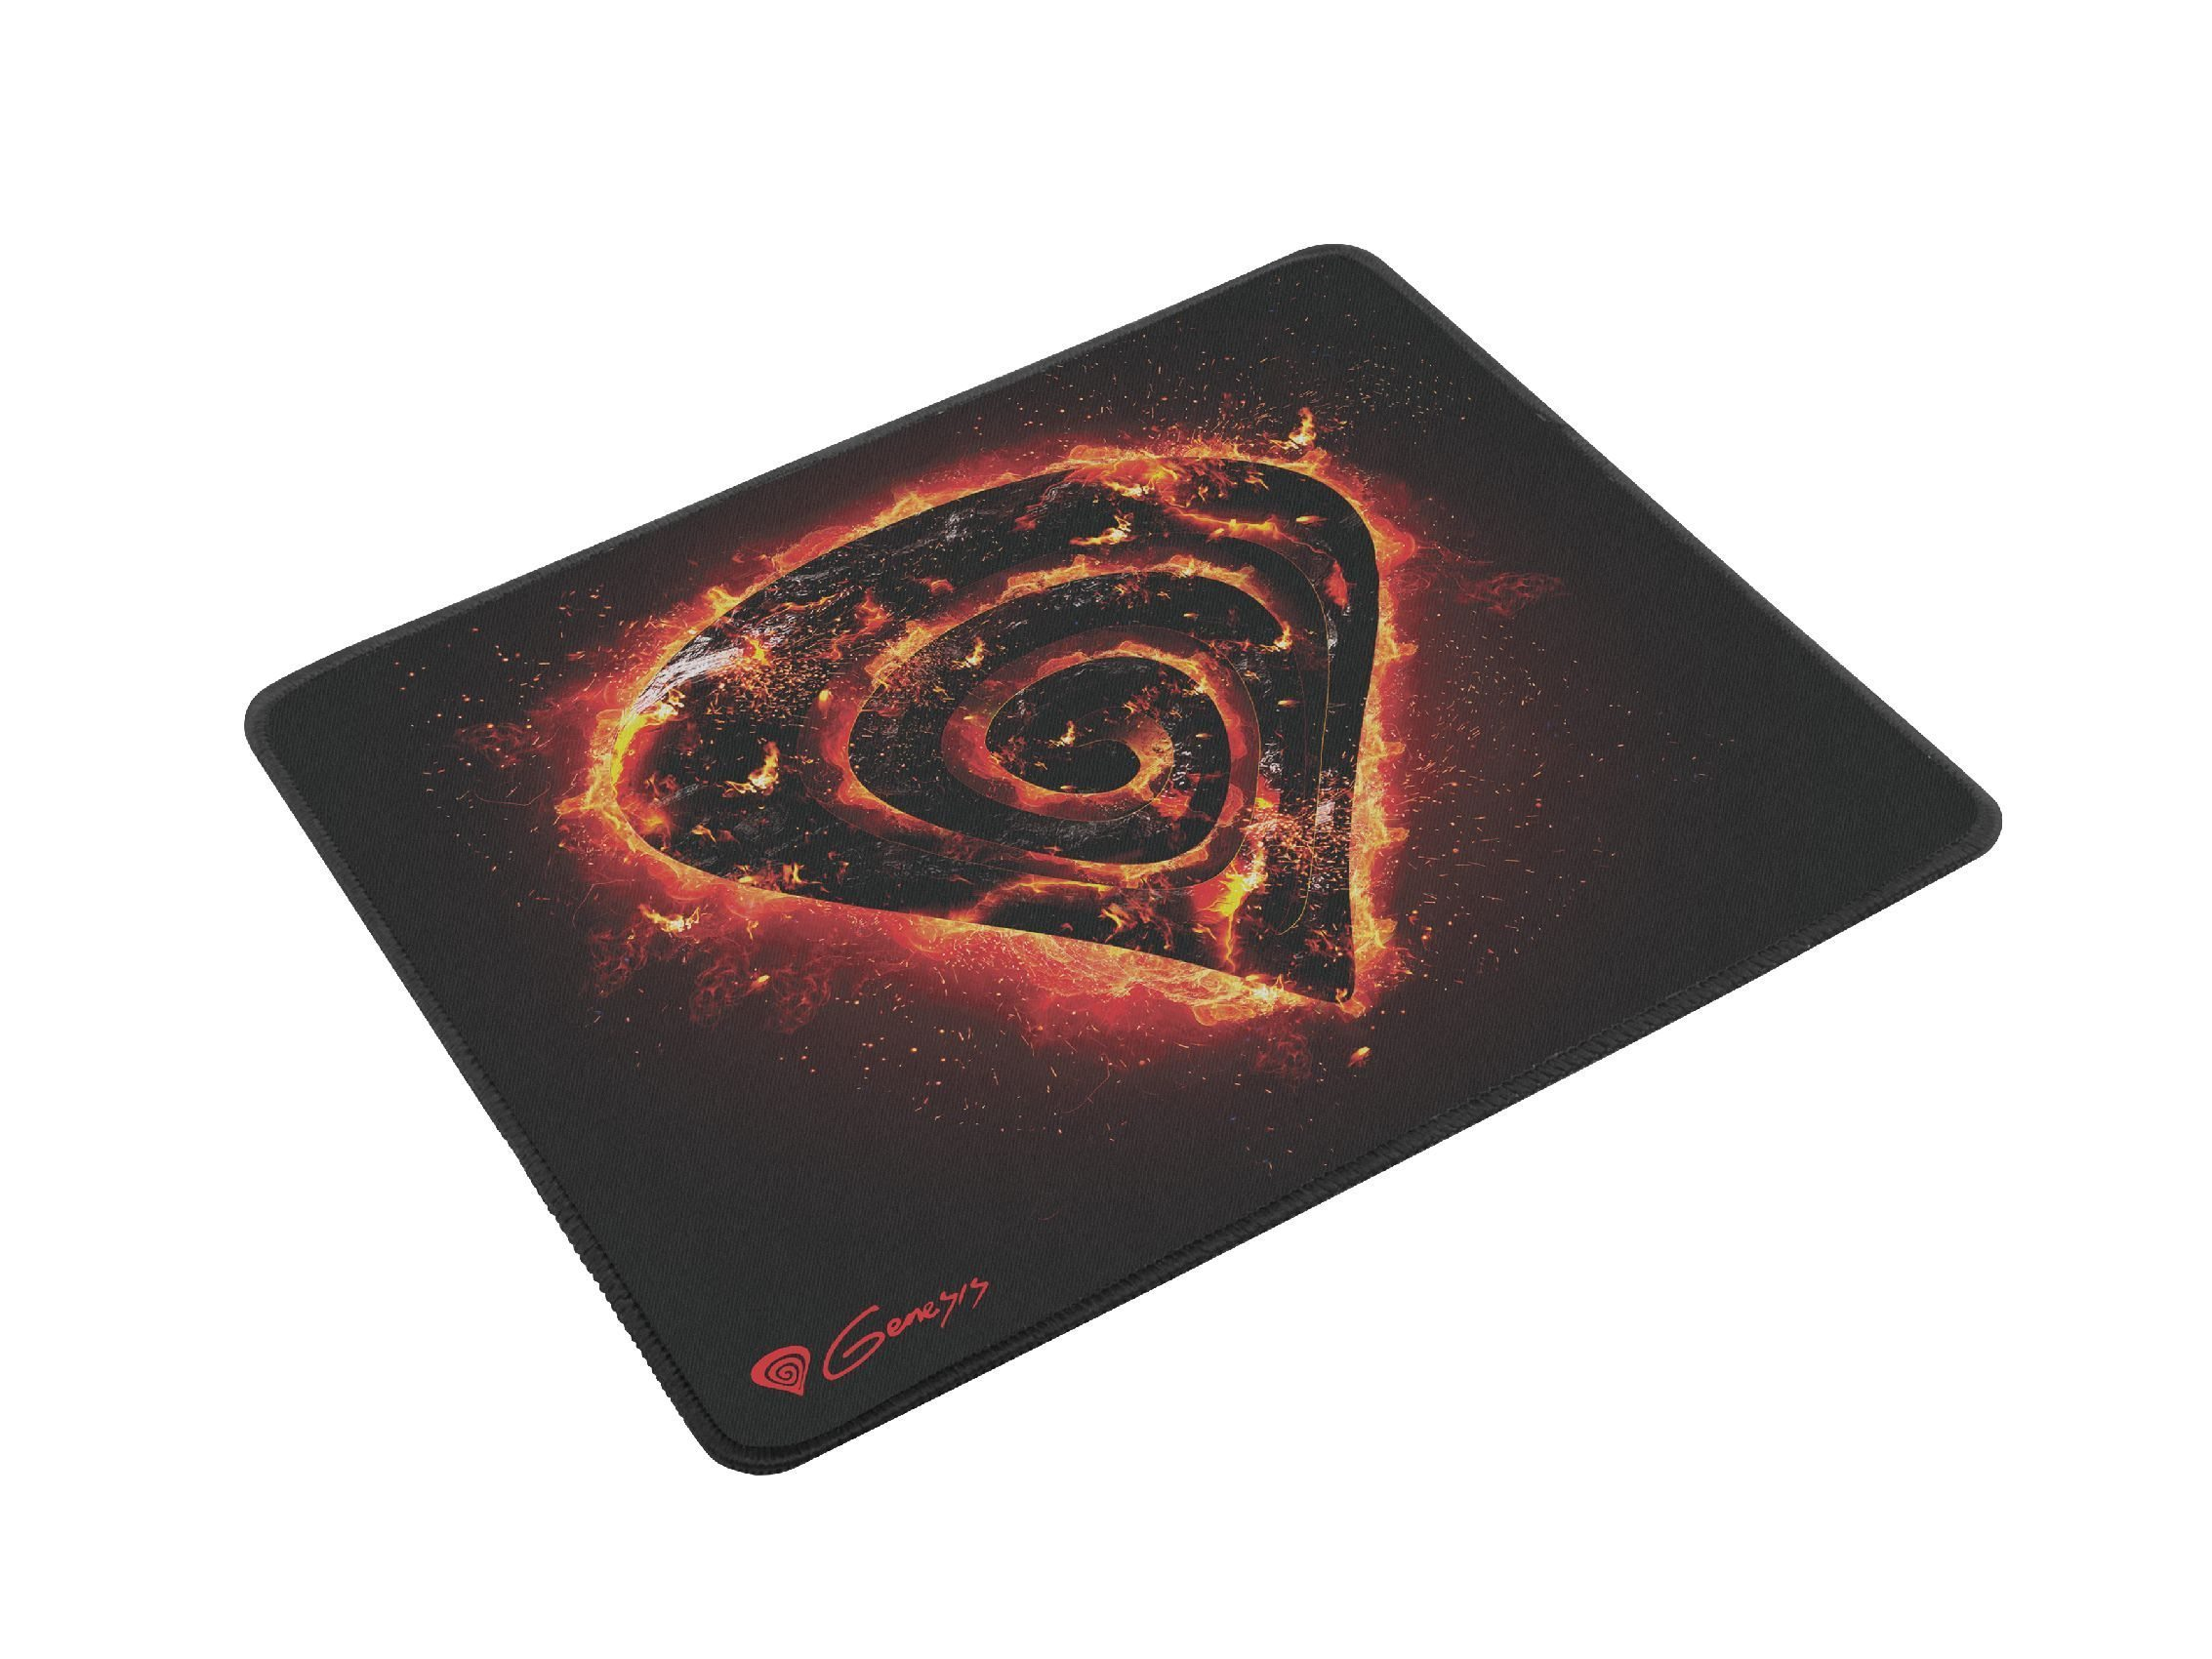 Genesis Gaming Mouse Pad M12 FIRE